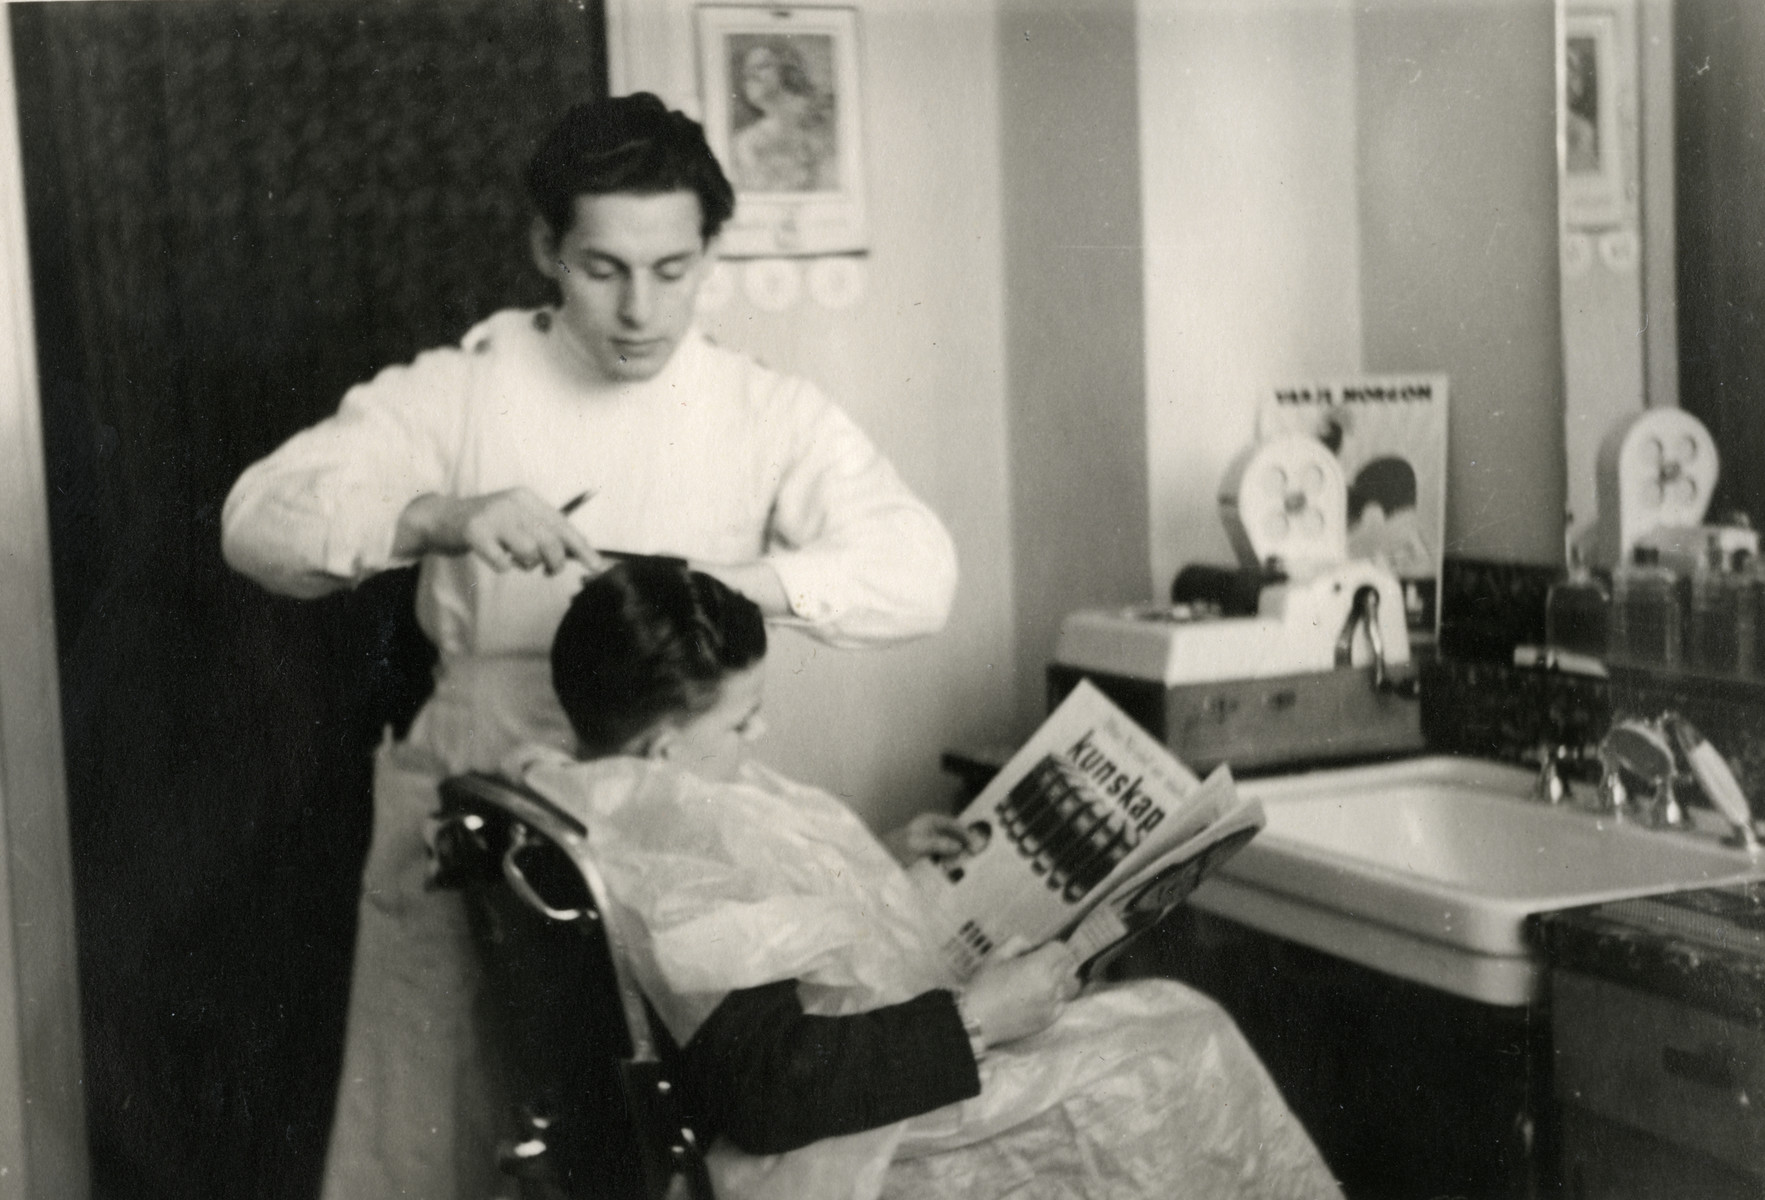 Abraham Kischinovsky learns to be a barber in Sweden.